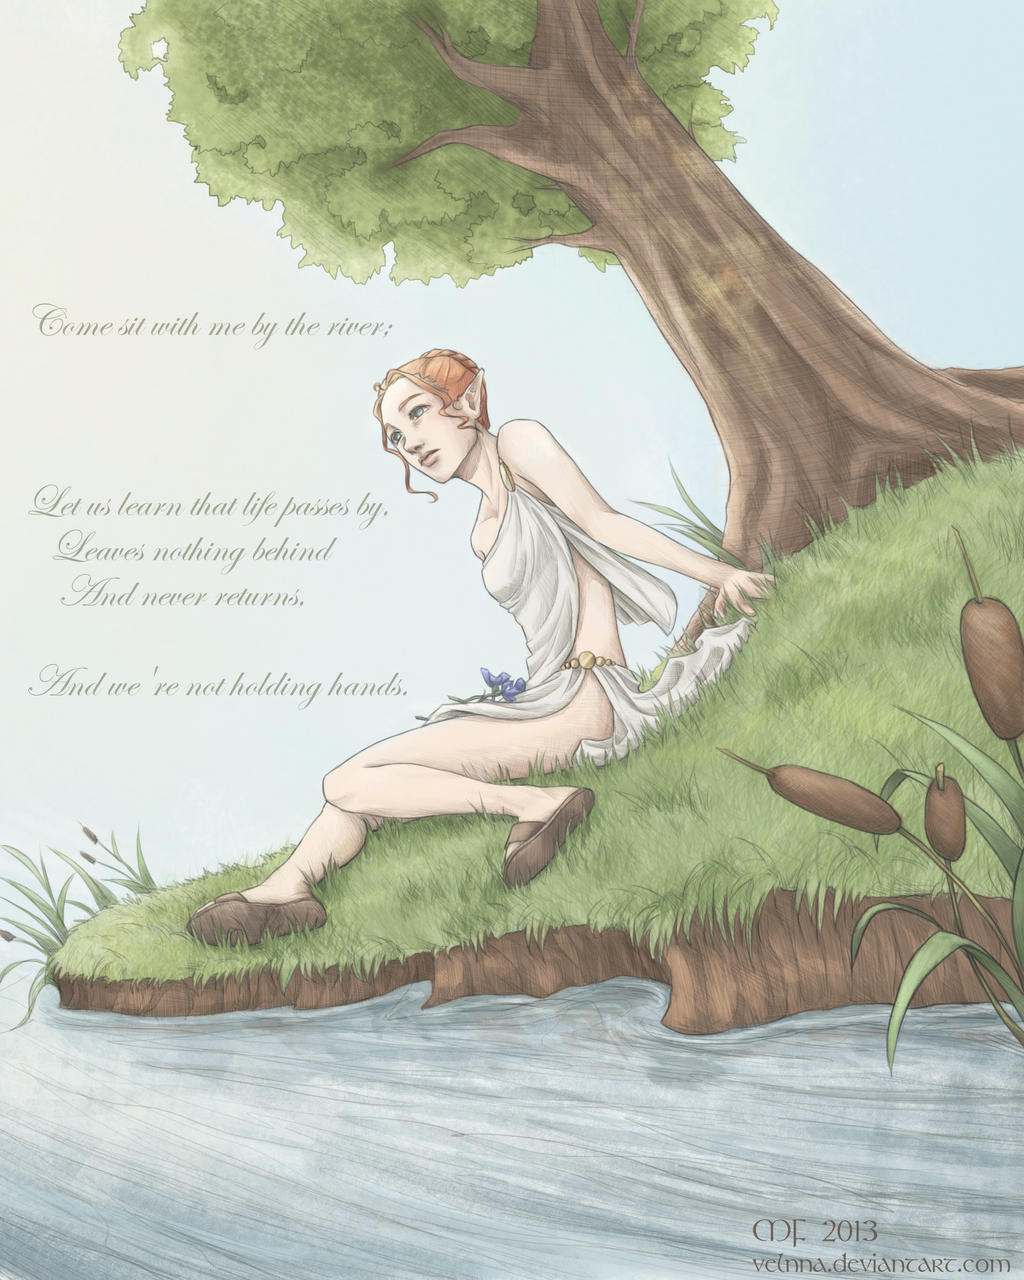 Come Sit With Me By The River by Velnna